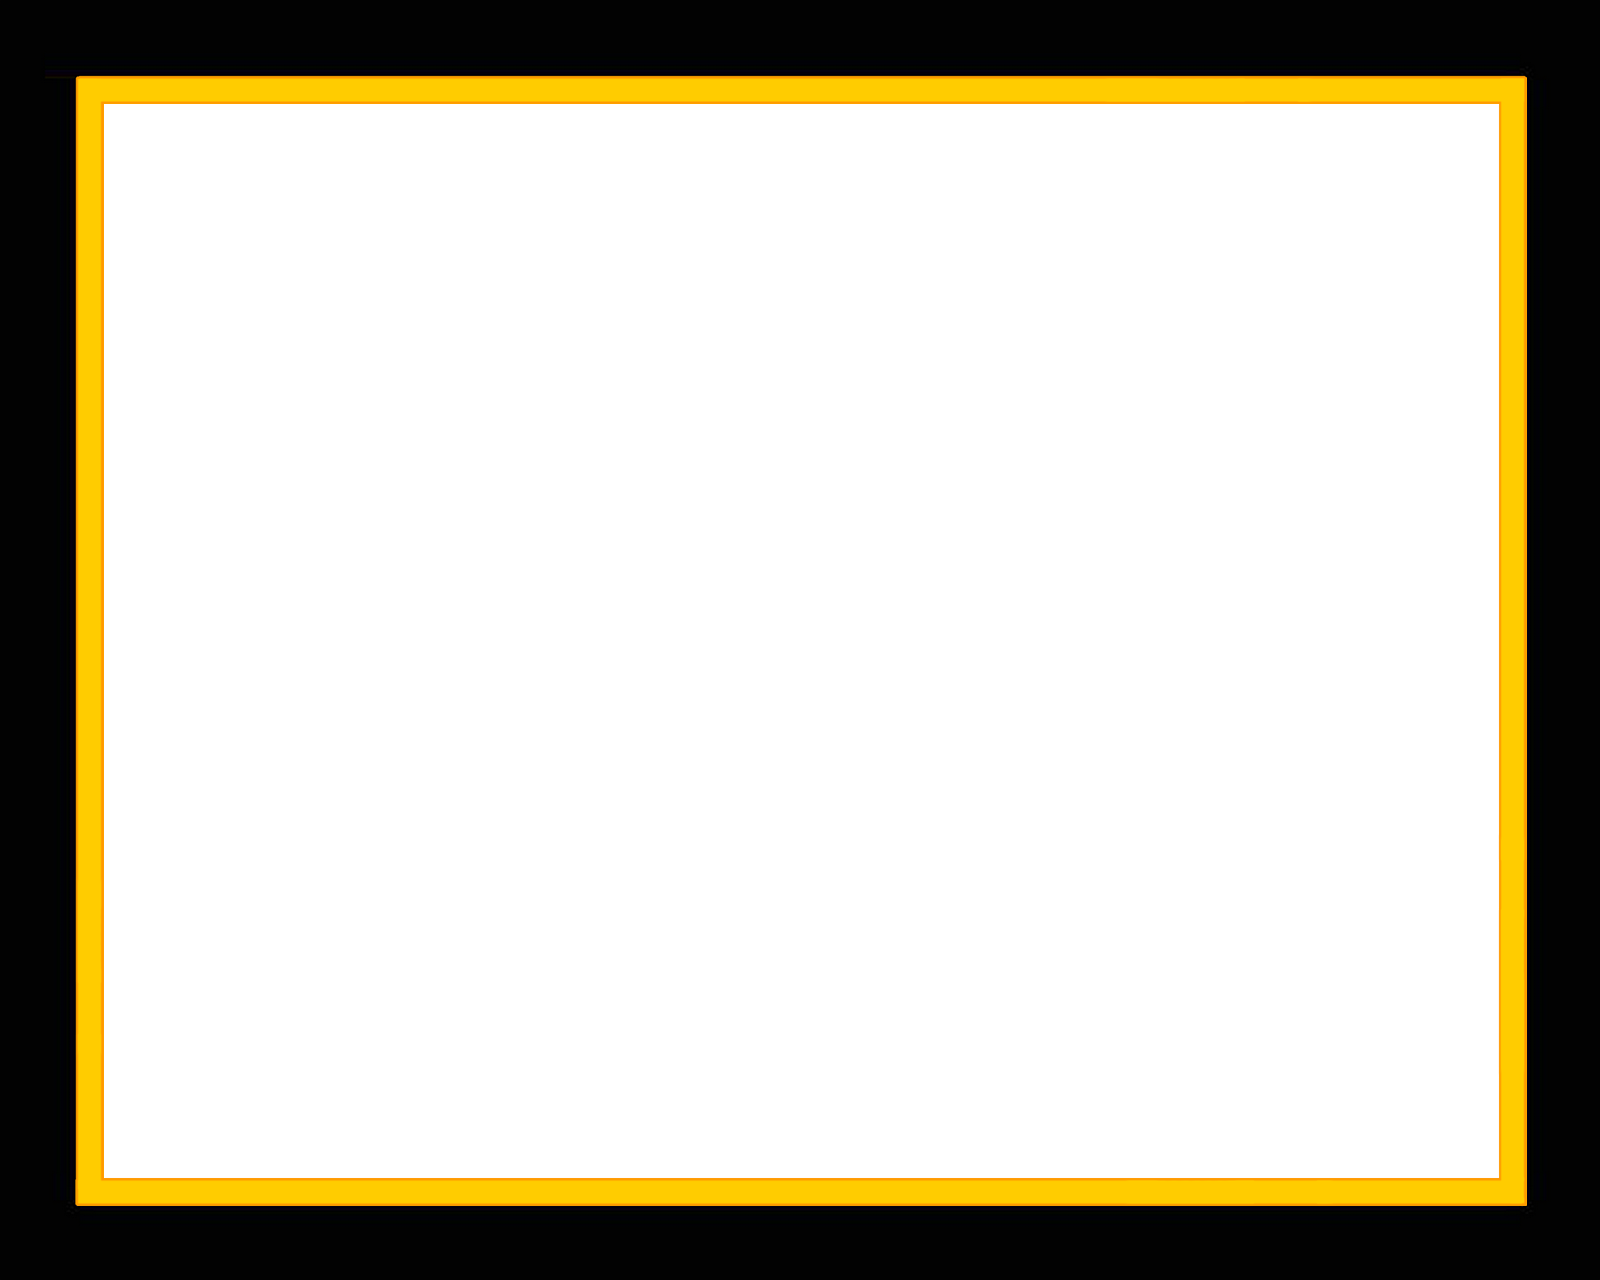 Black border png. Frame with darker yellow